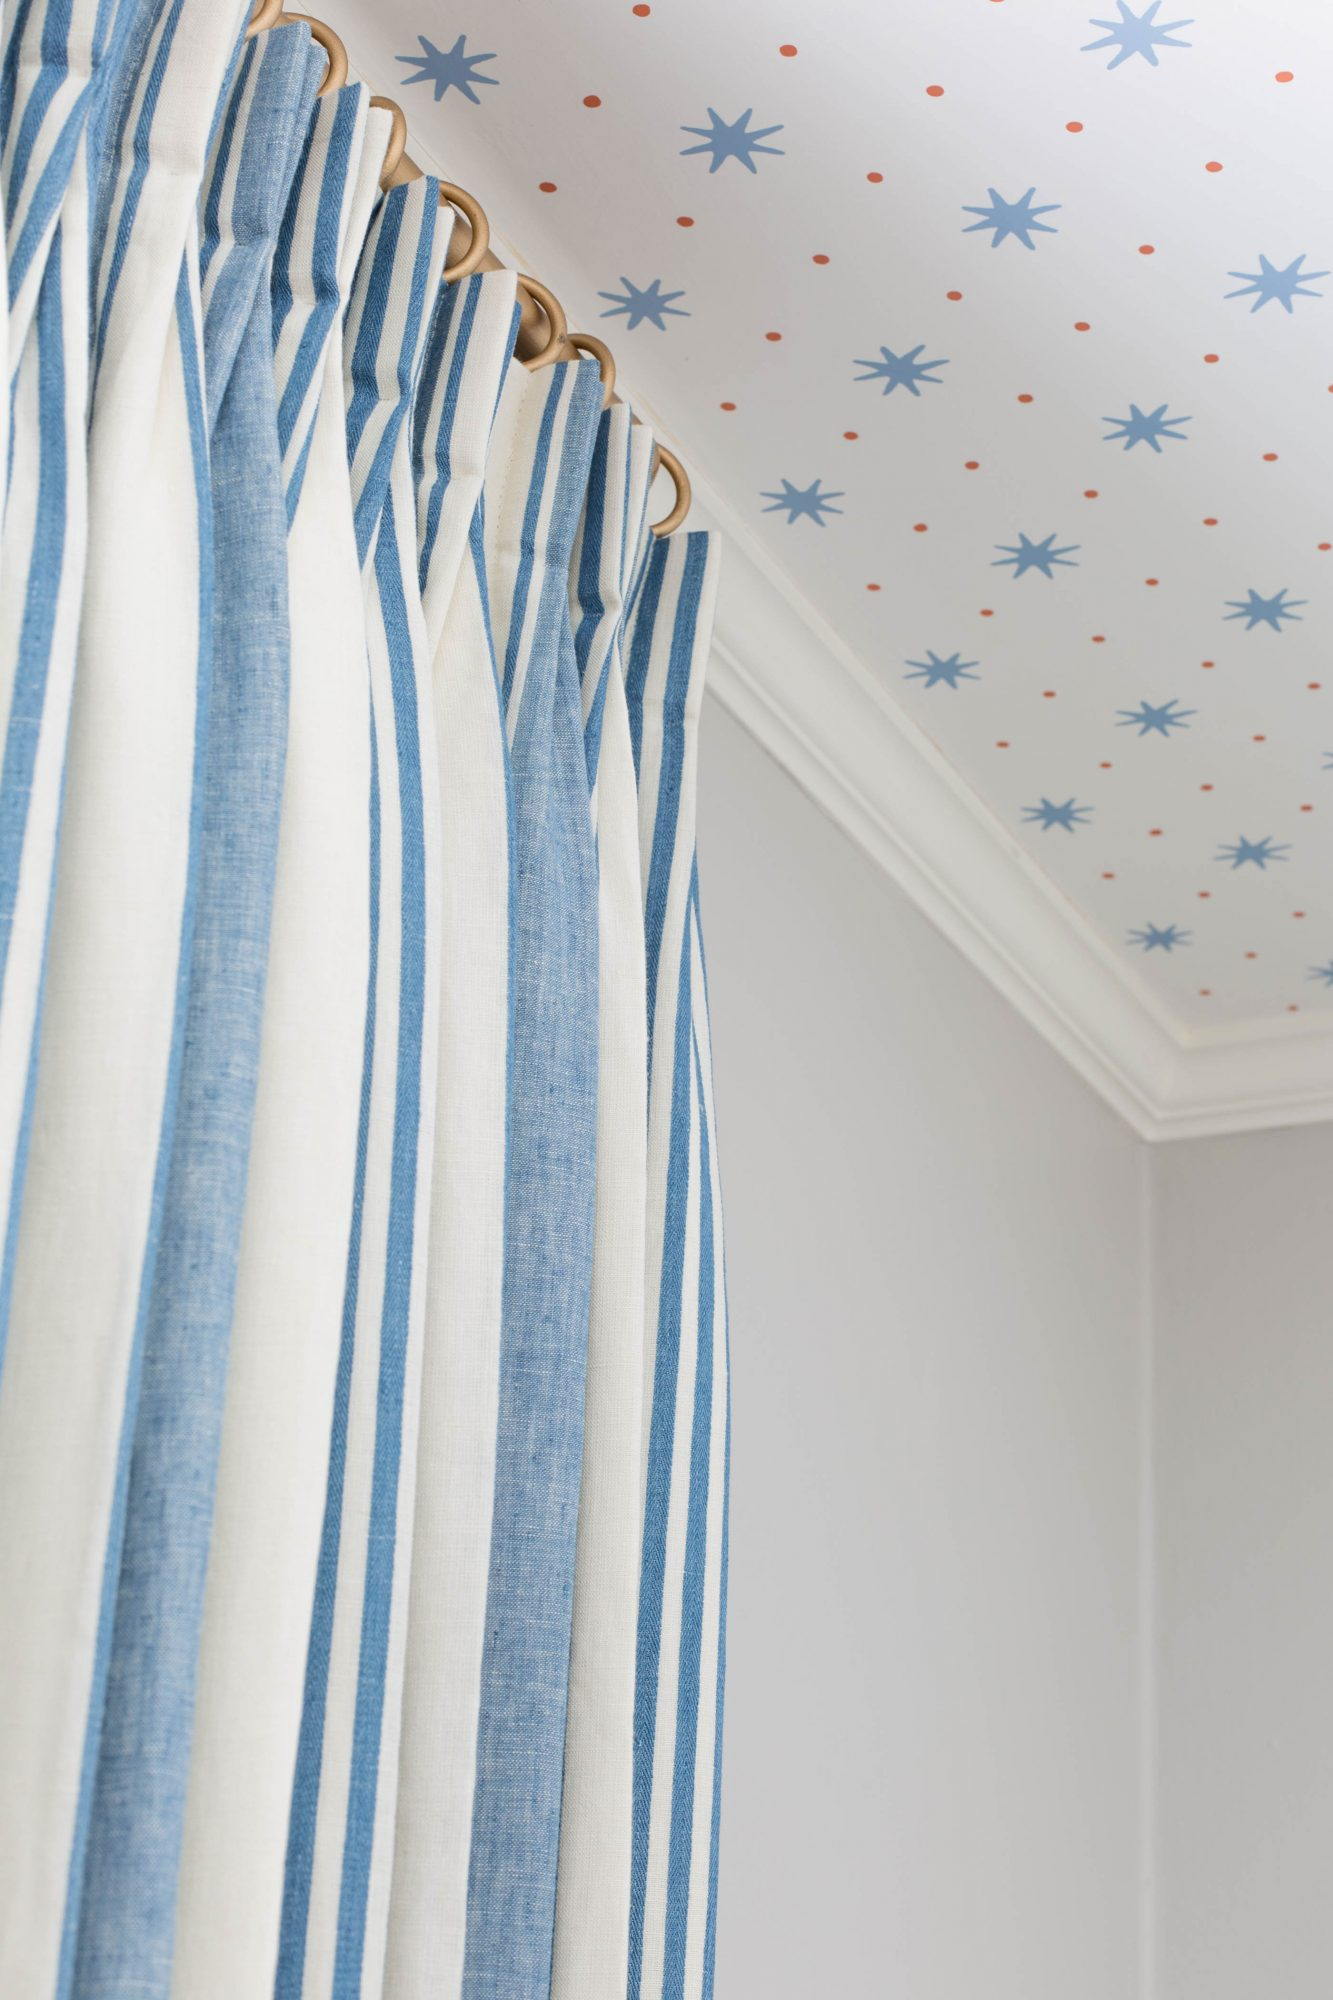 Baby Room Striped Curtains